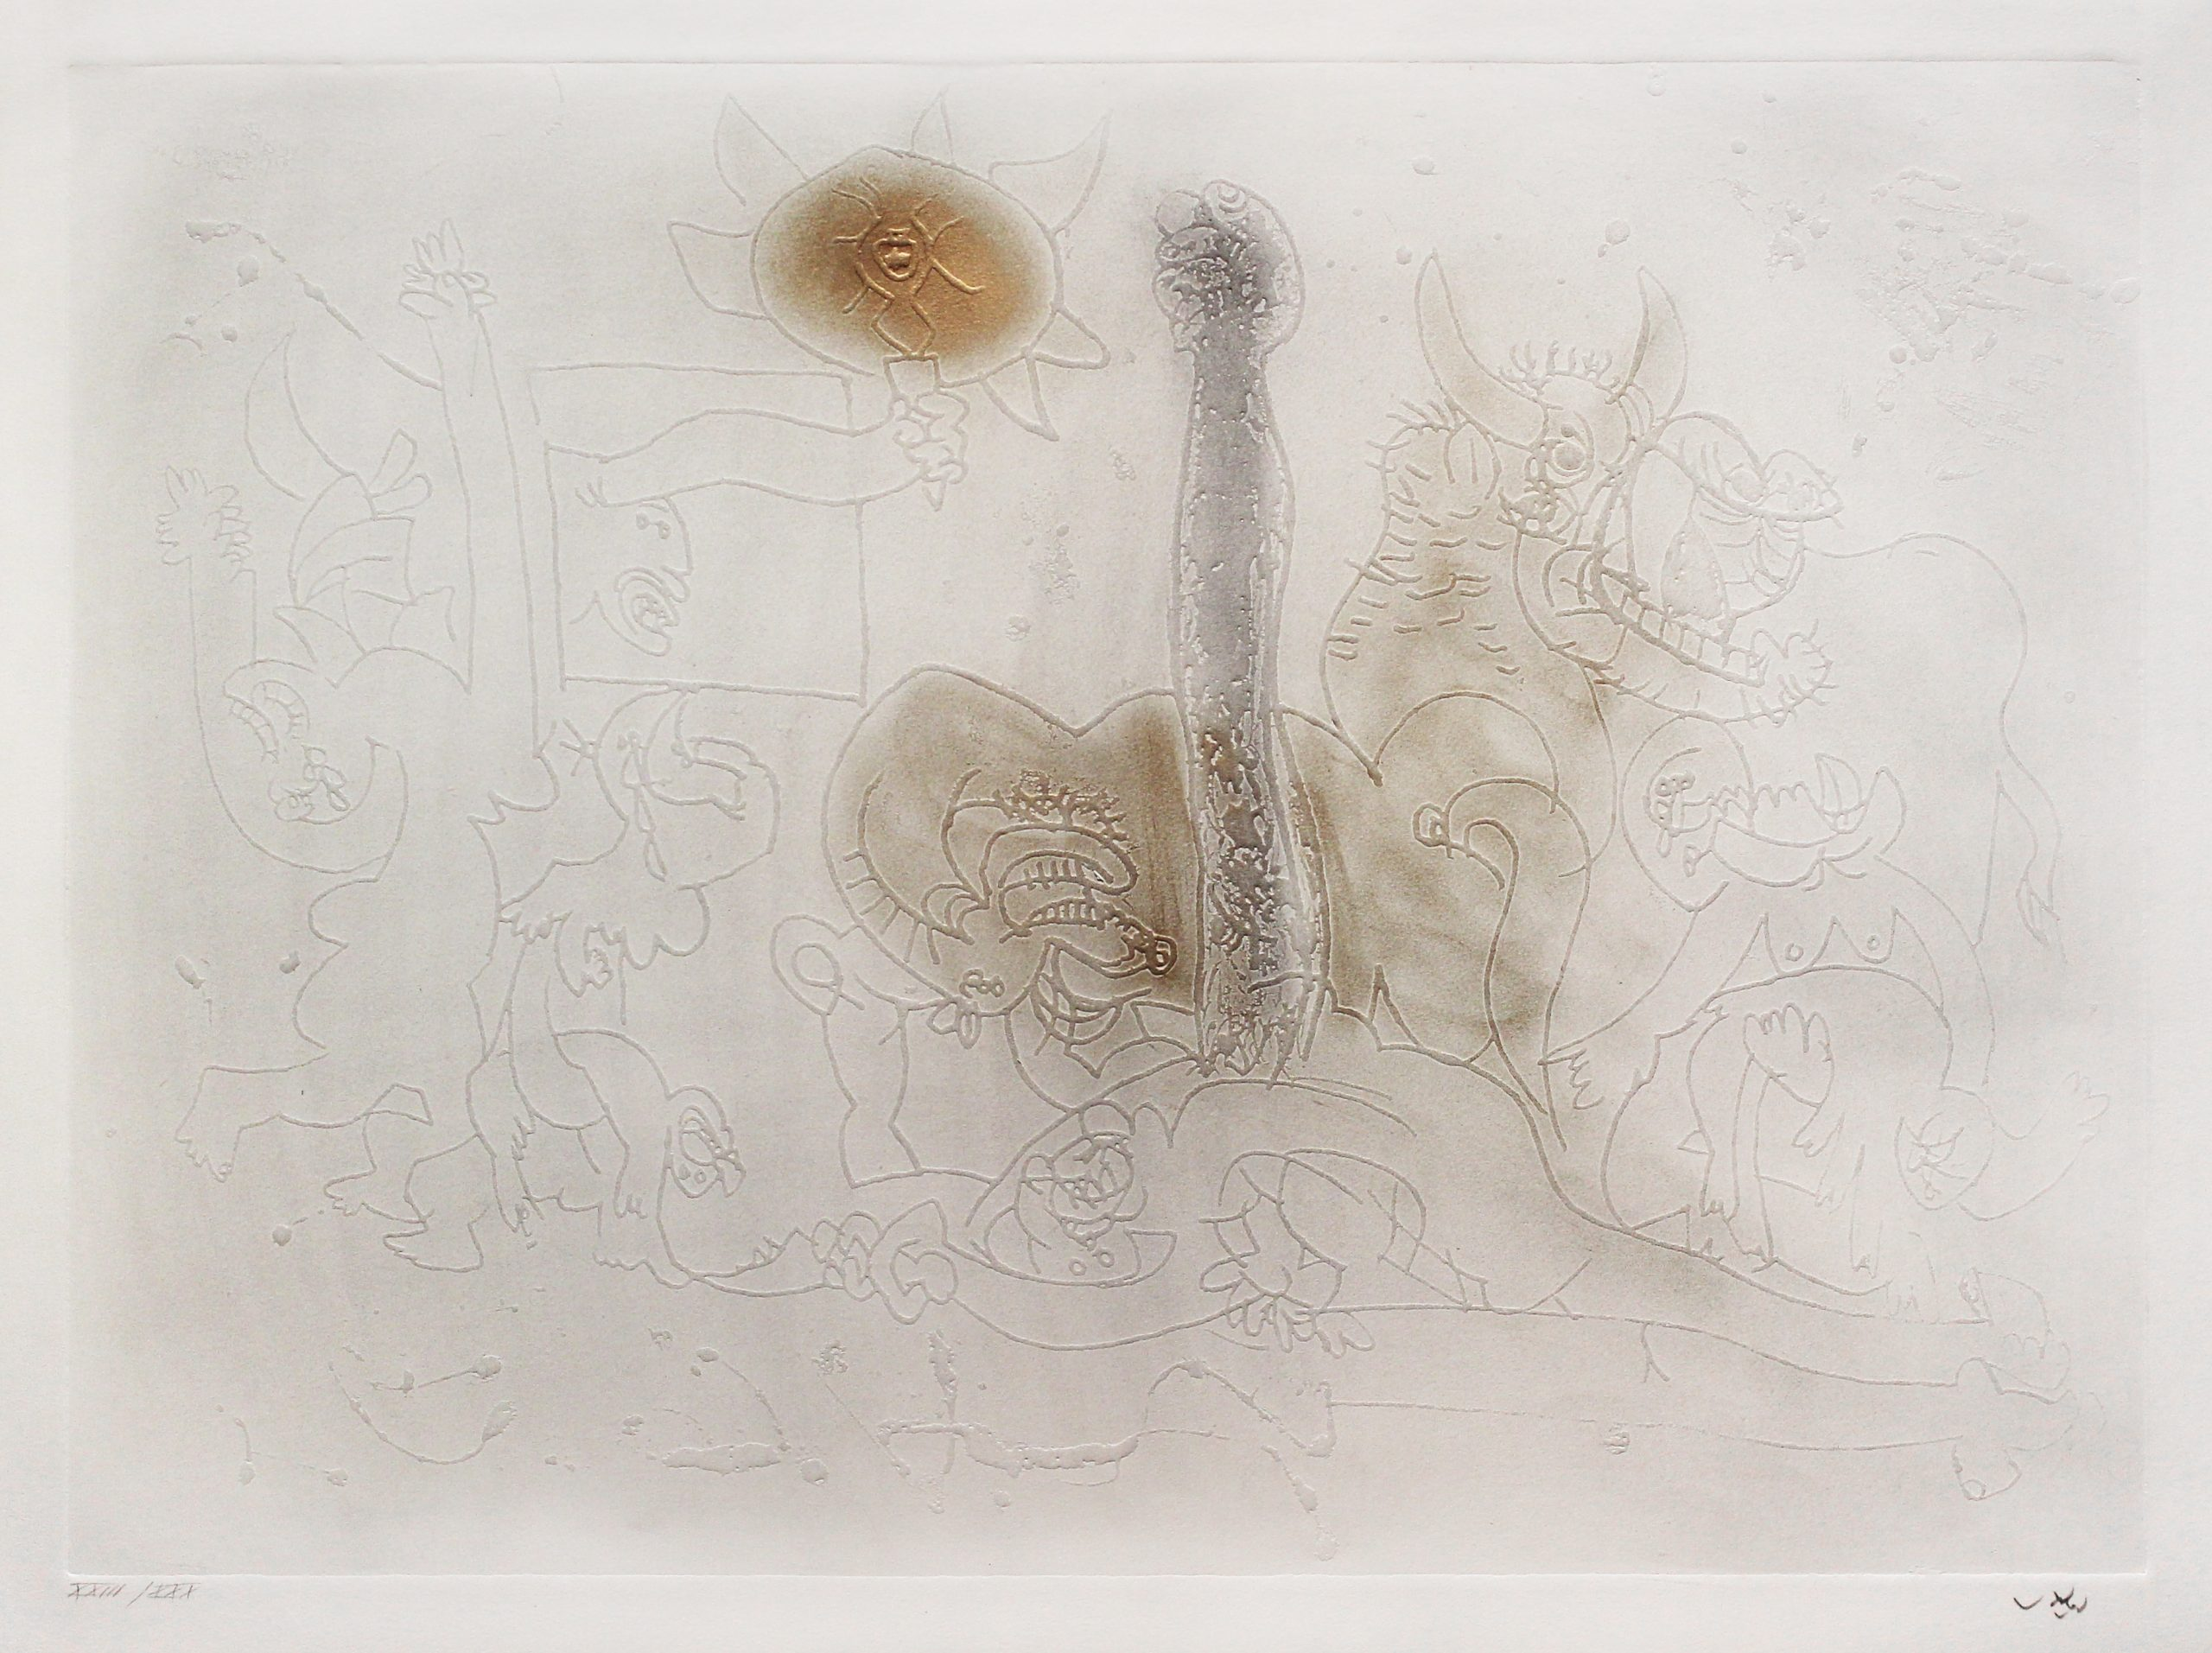 Le Poing du Jour (The Fist of the Day) by Roberto Matta